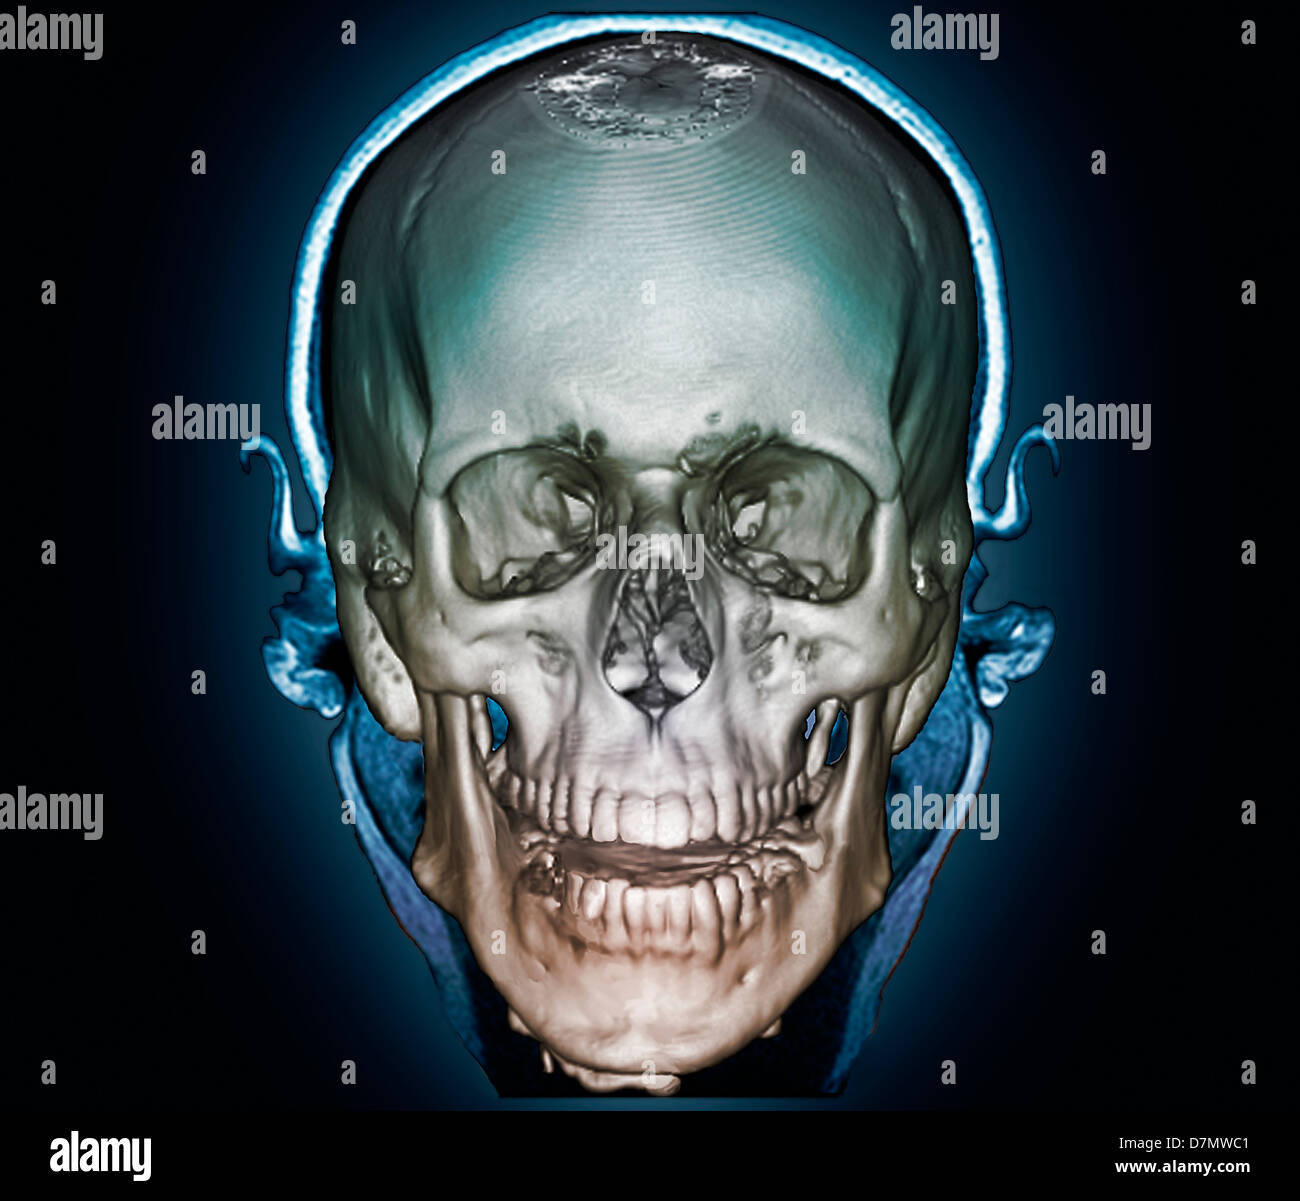 Human skull, 3D CT scan - Stock Image